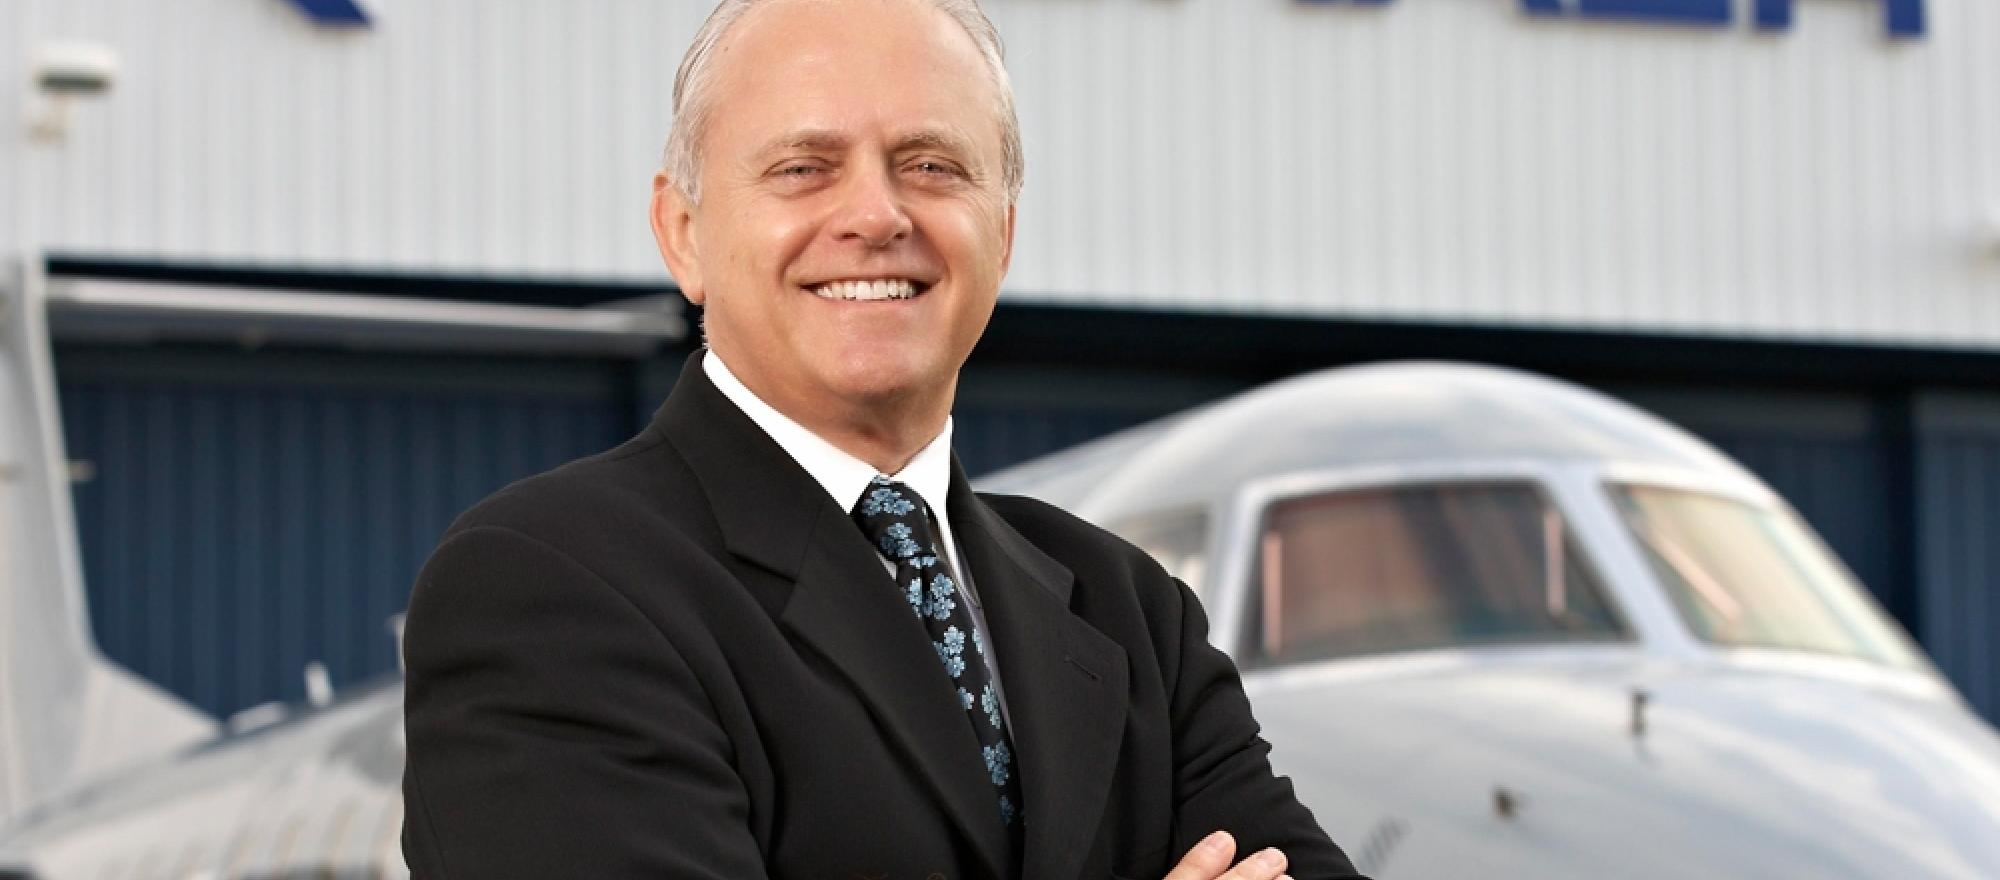 Ernie Edwards, President of Embraer Executive Jets